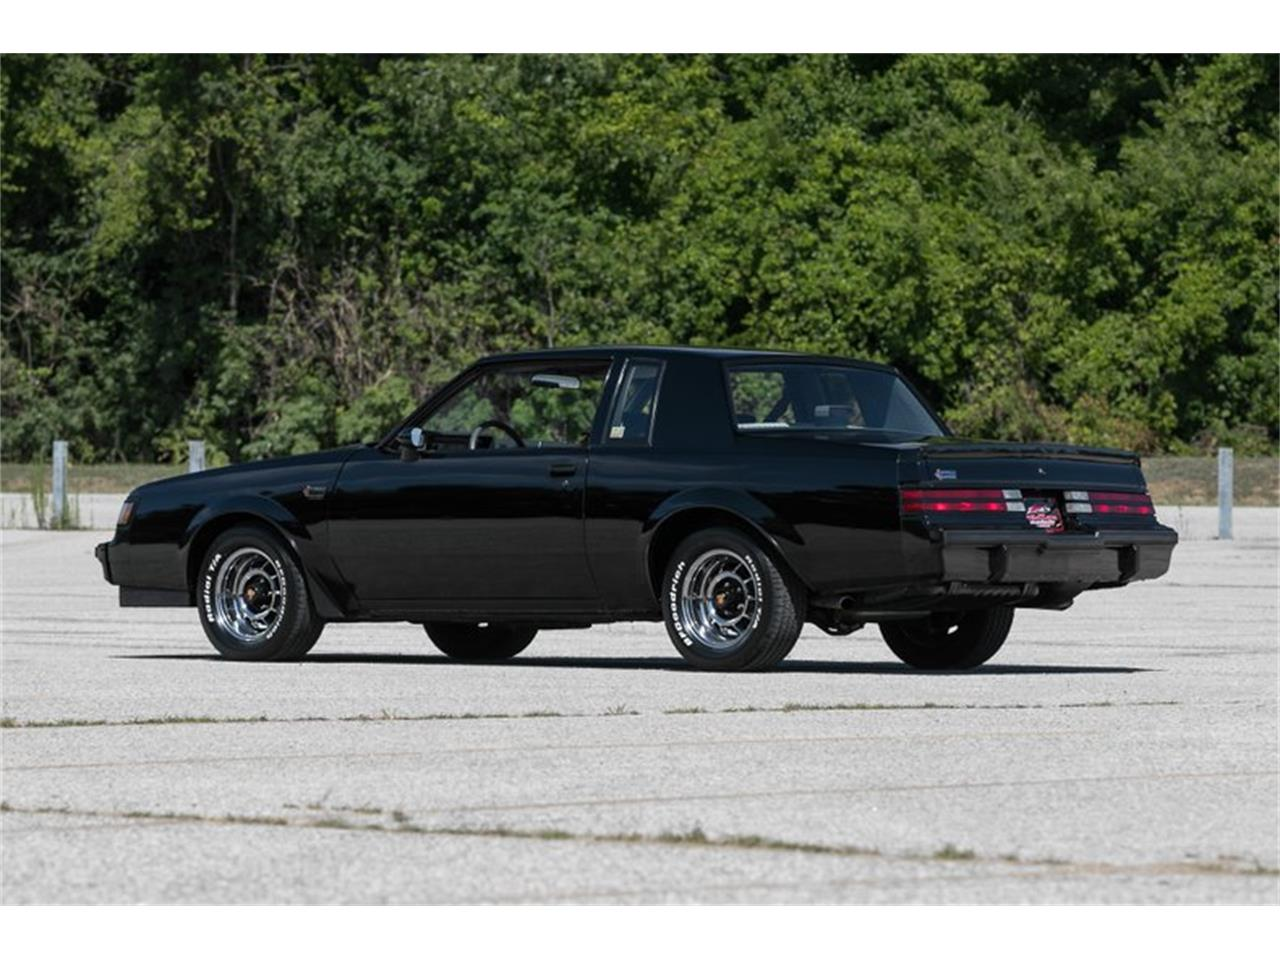 Large Picture of '87 Buick Grand National located in Missouri - $32,995.00 - QL95